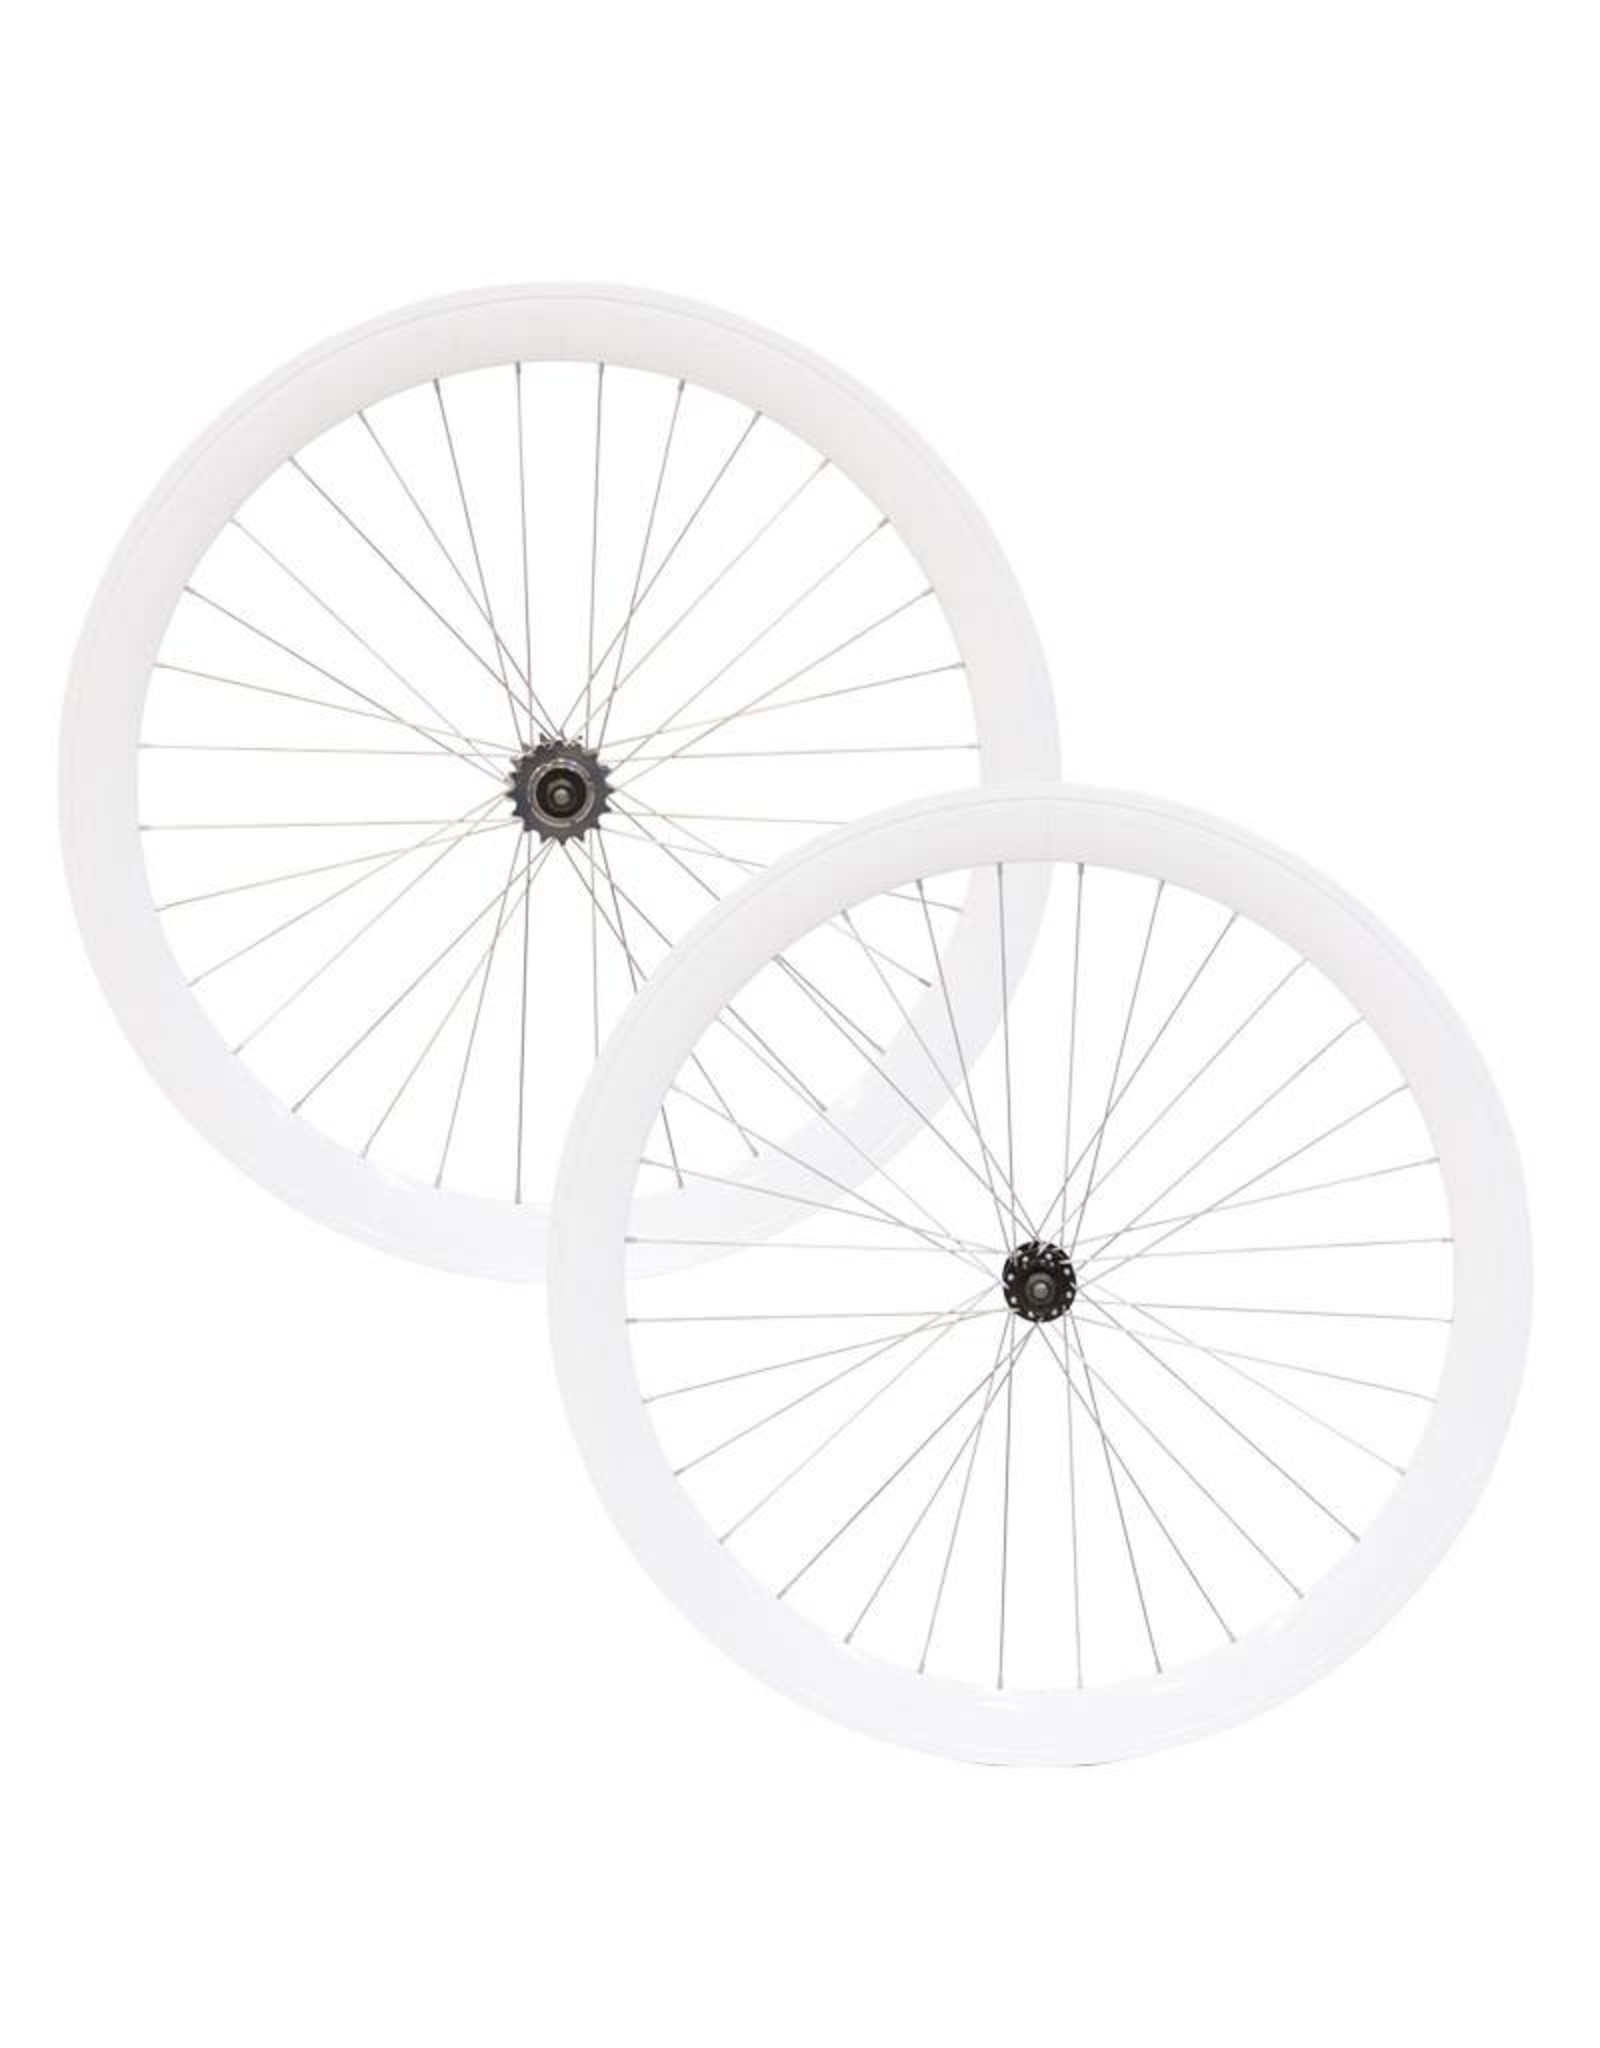 Damco Single Speed / Fixed 50MM